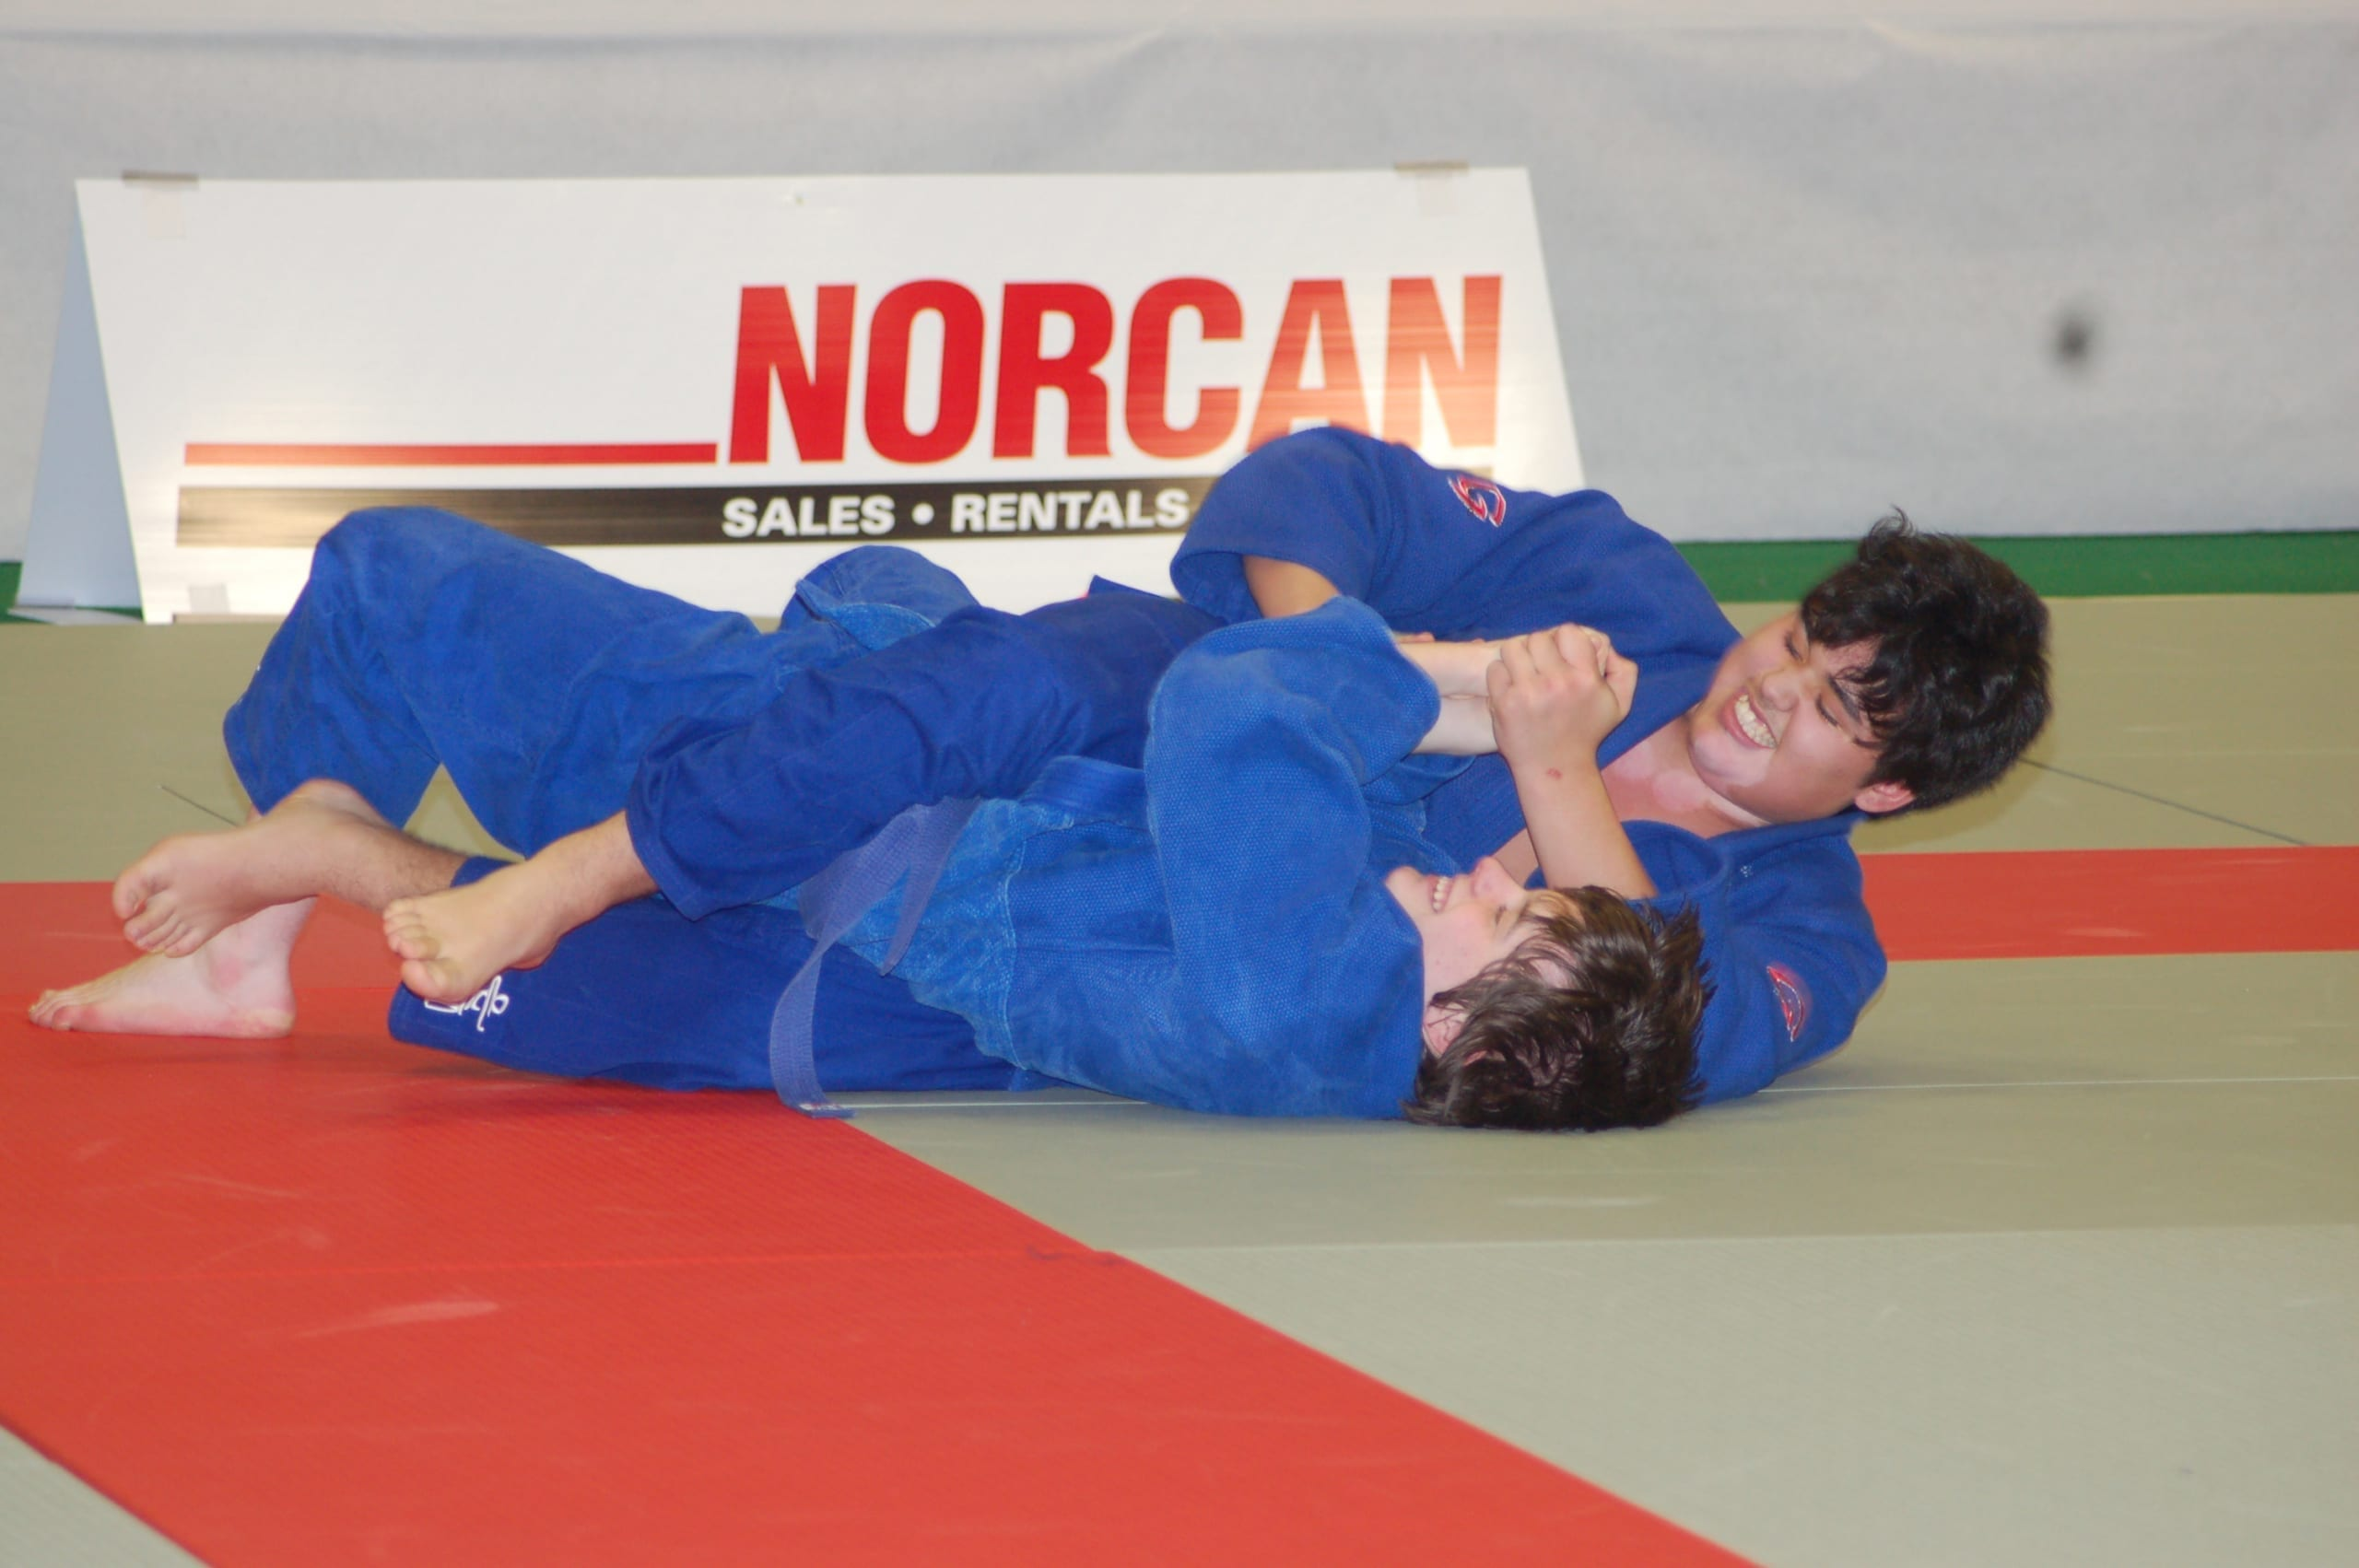 Iqaluit's Eugene Dederick, top, practices nee-waza (ground grappling) with Zachary Green at the 2007 Canada Winter Games in Whitehorse. Dederick won bronze in his weight category, the first medal for Nunavut ever at the Canada Winter Games or Canada Summer Games. NNSL file photo